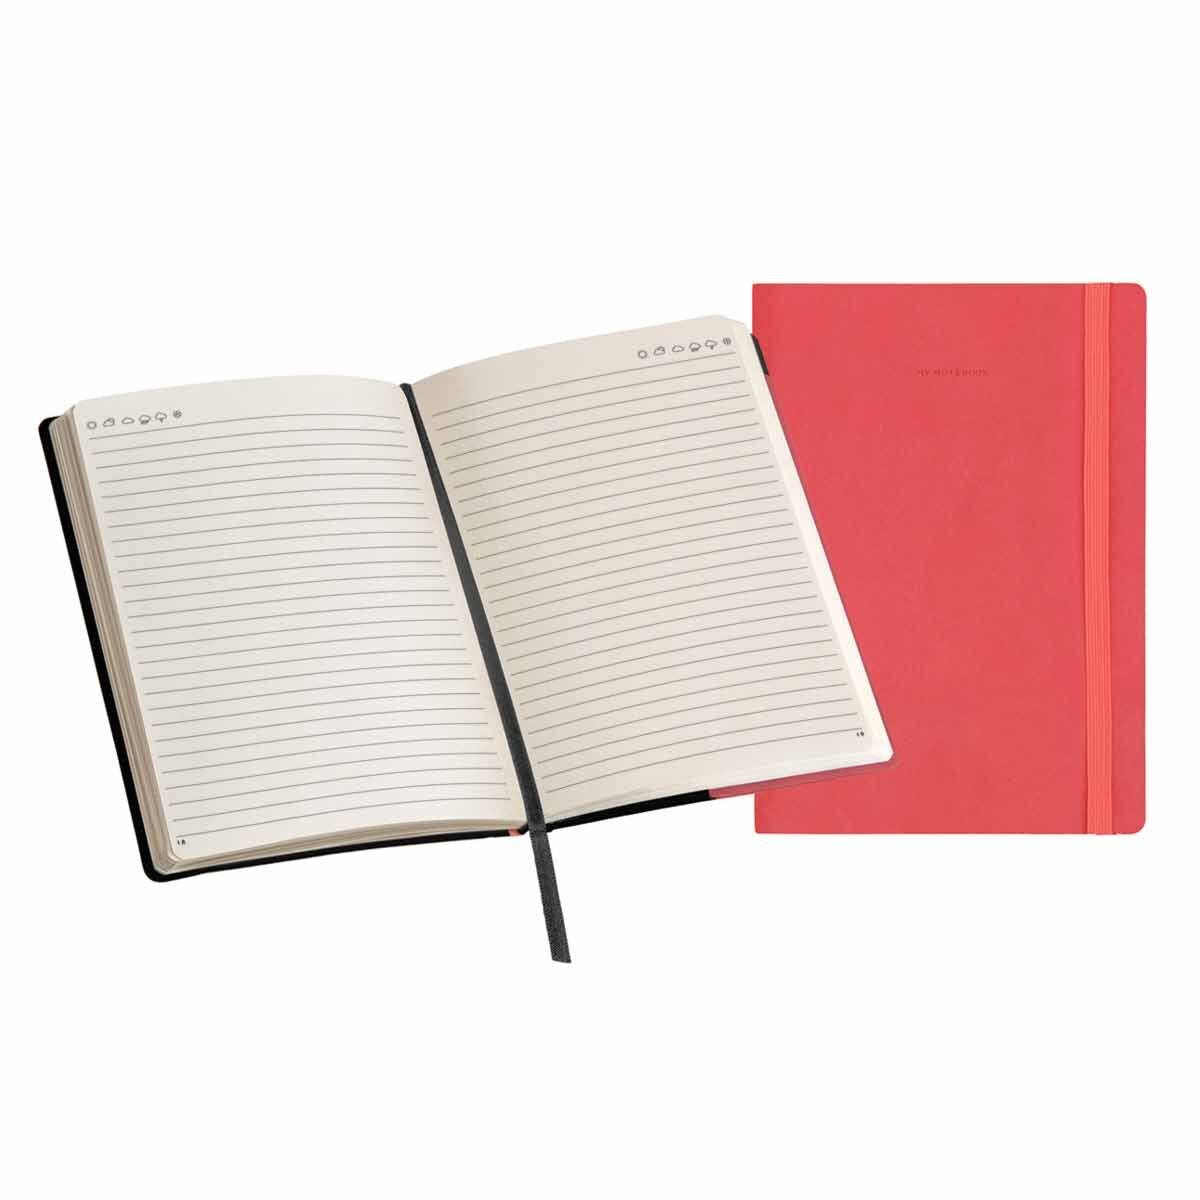 Legami My Notebook Large Lined